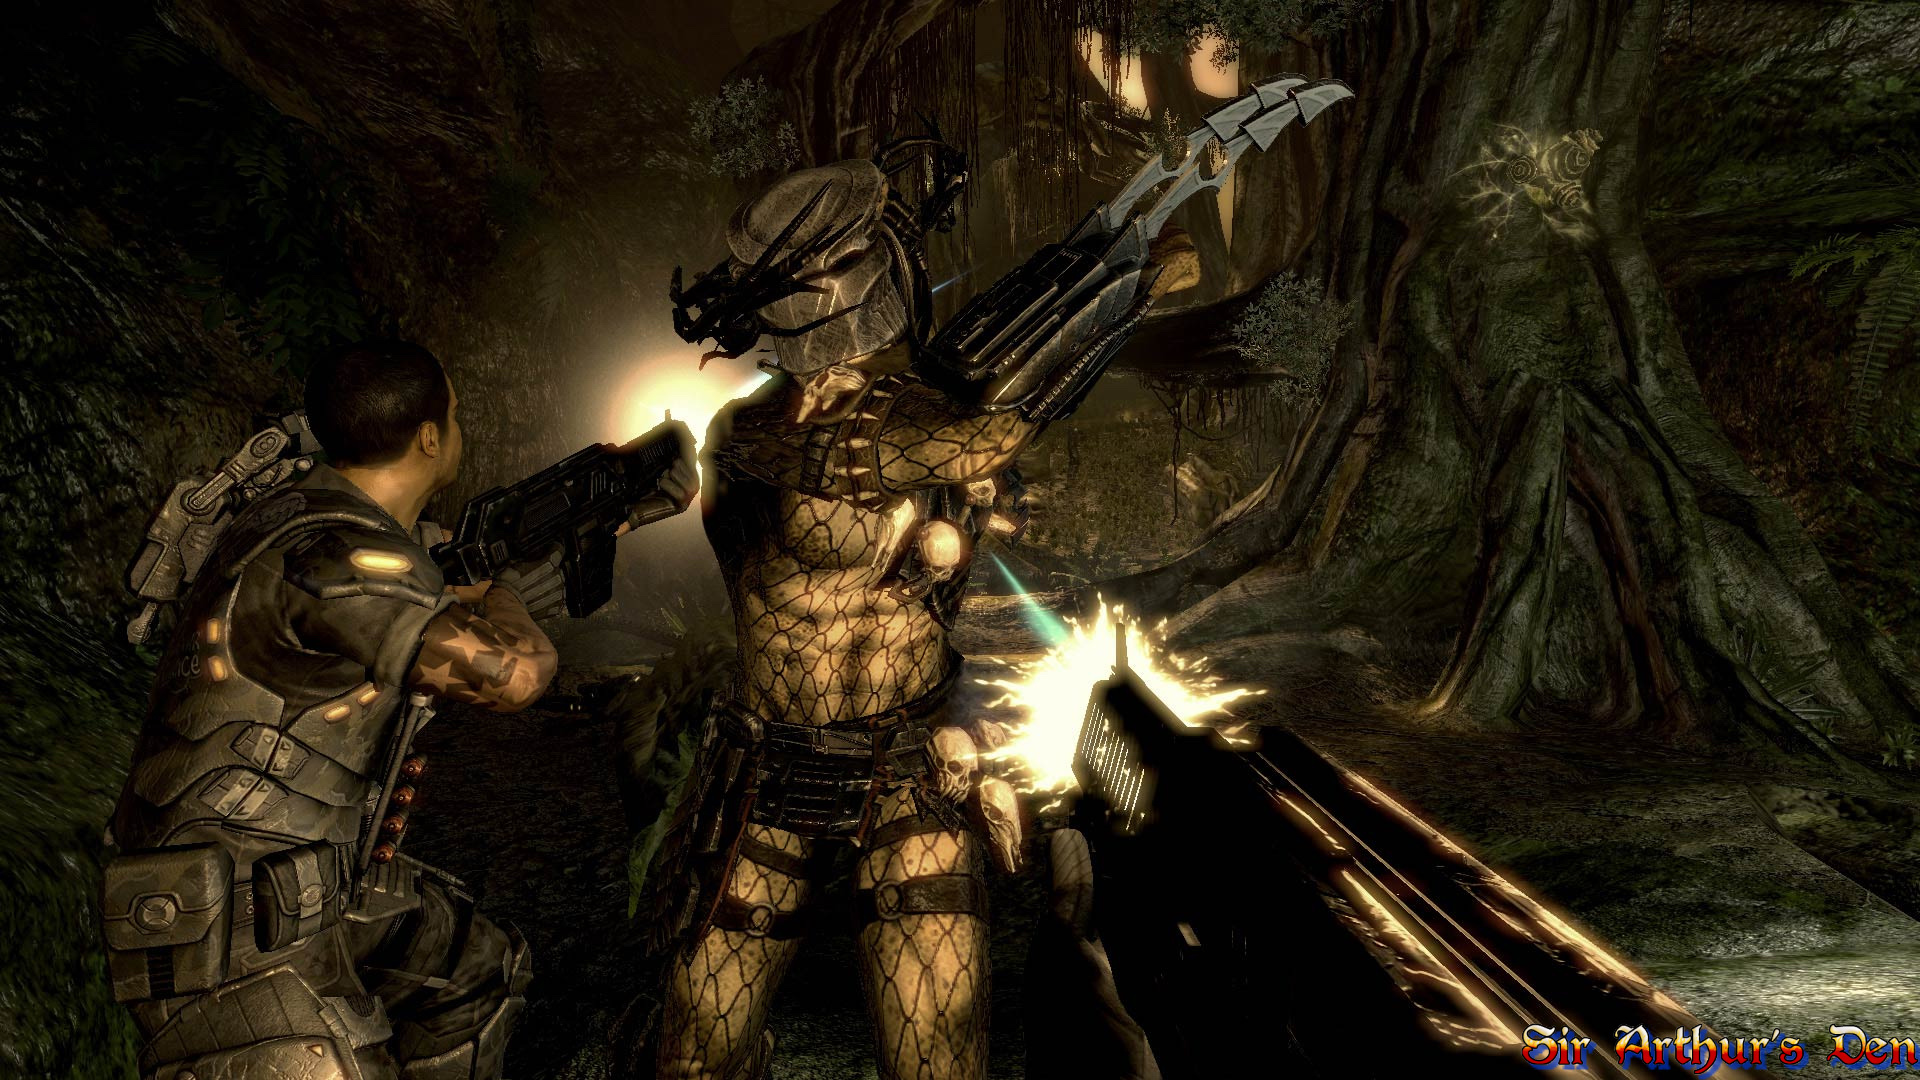 Aliens vs predator screenshot 1